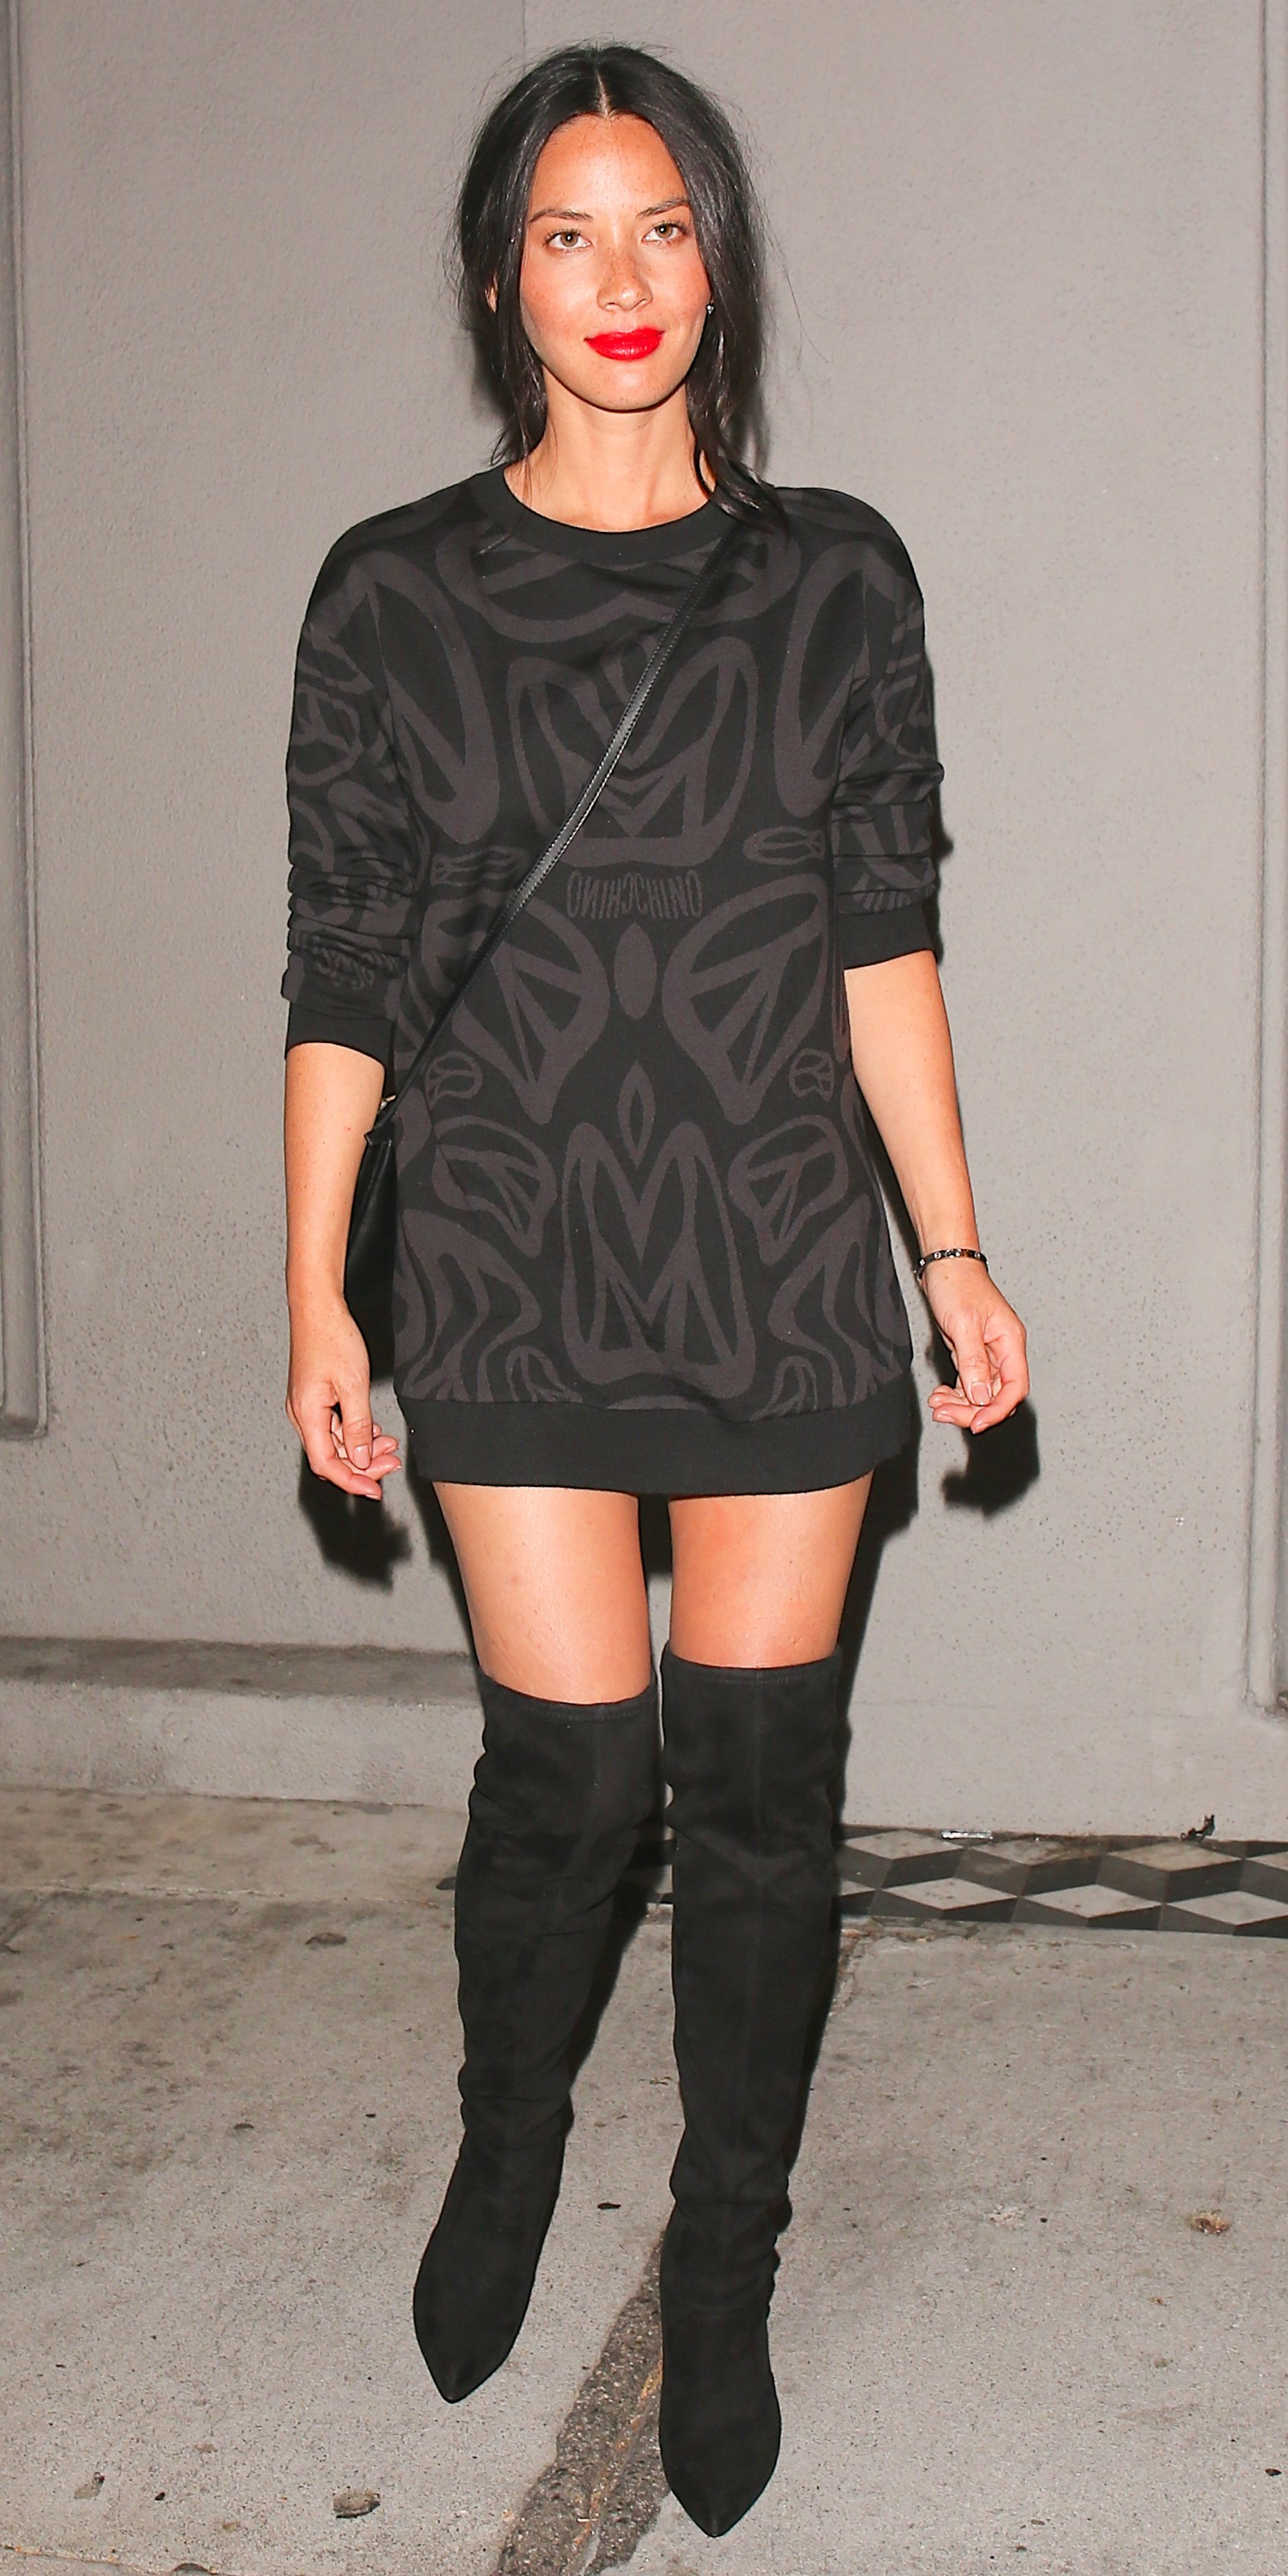 Olivia Munn Makes A Sweatshirt Dress And Thigh High Boots Work For Summer Celebrity Outfits Sweatshirt Dress Olivia Munn [ 3747 x 1874 Pixel ]